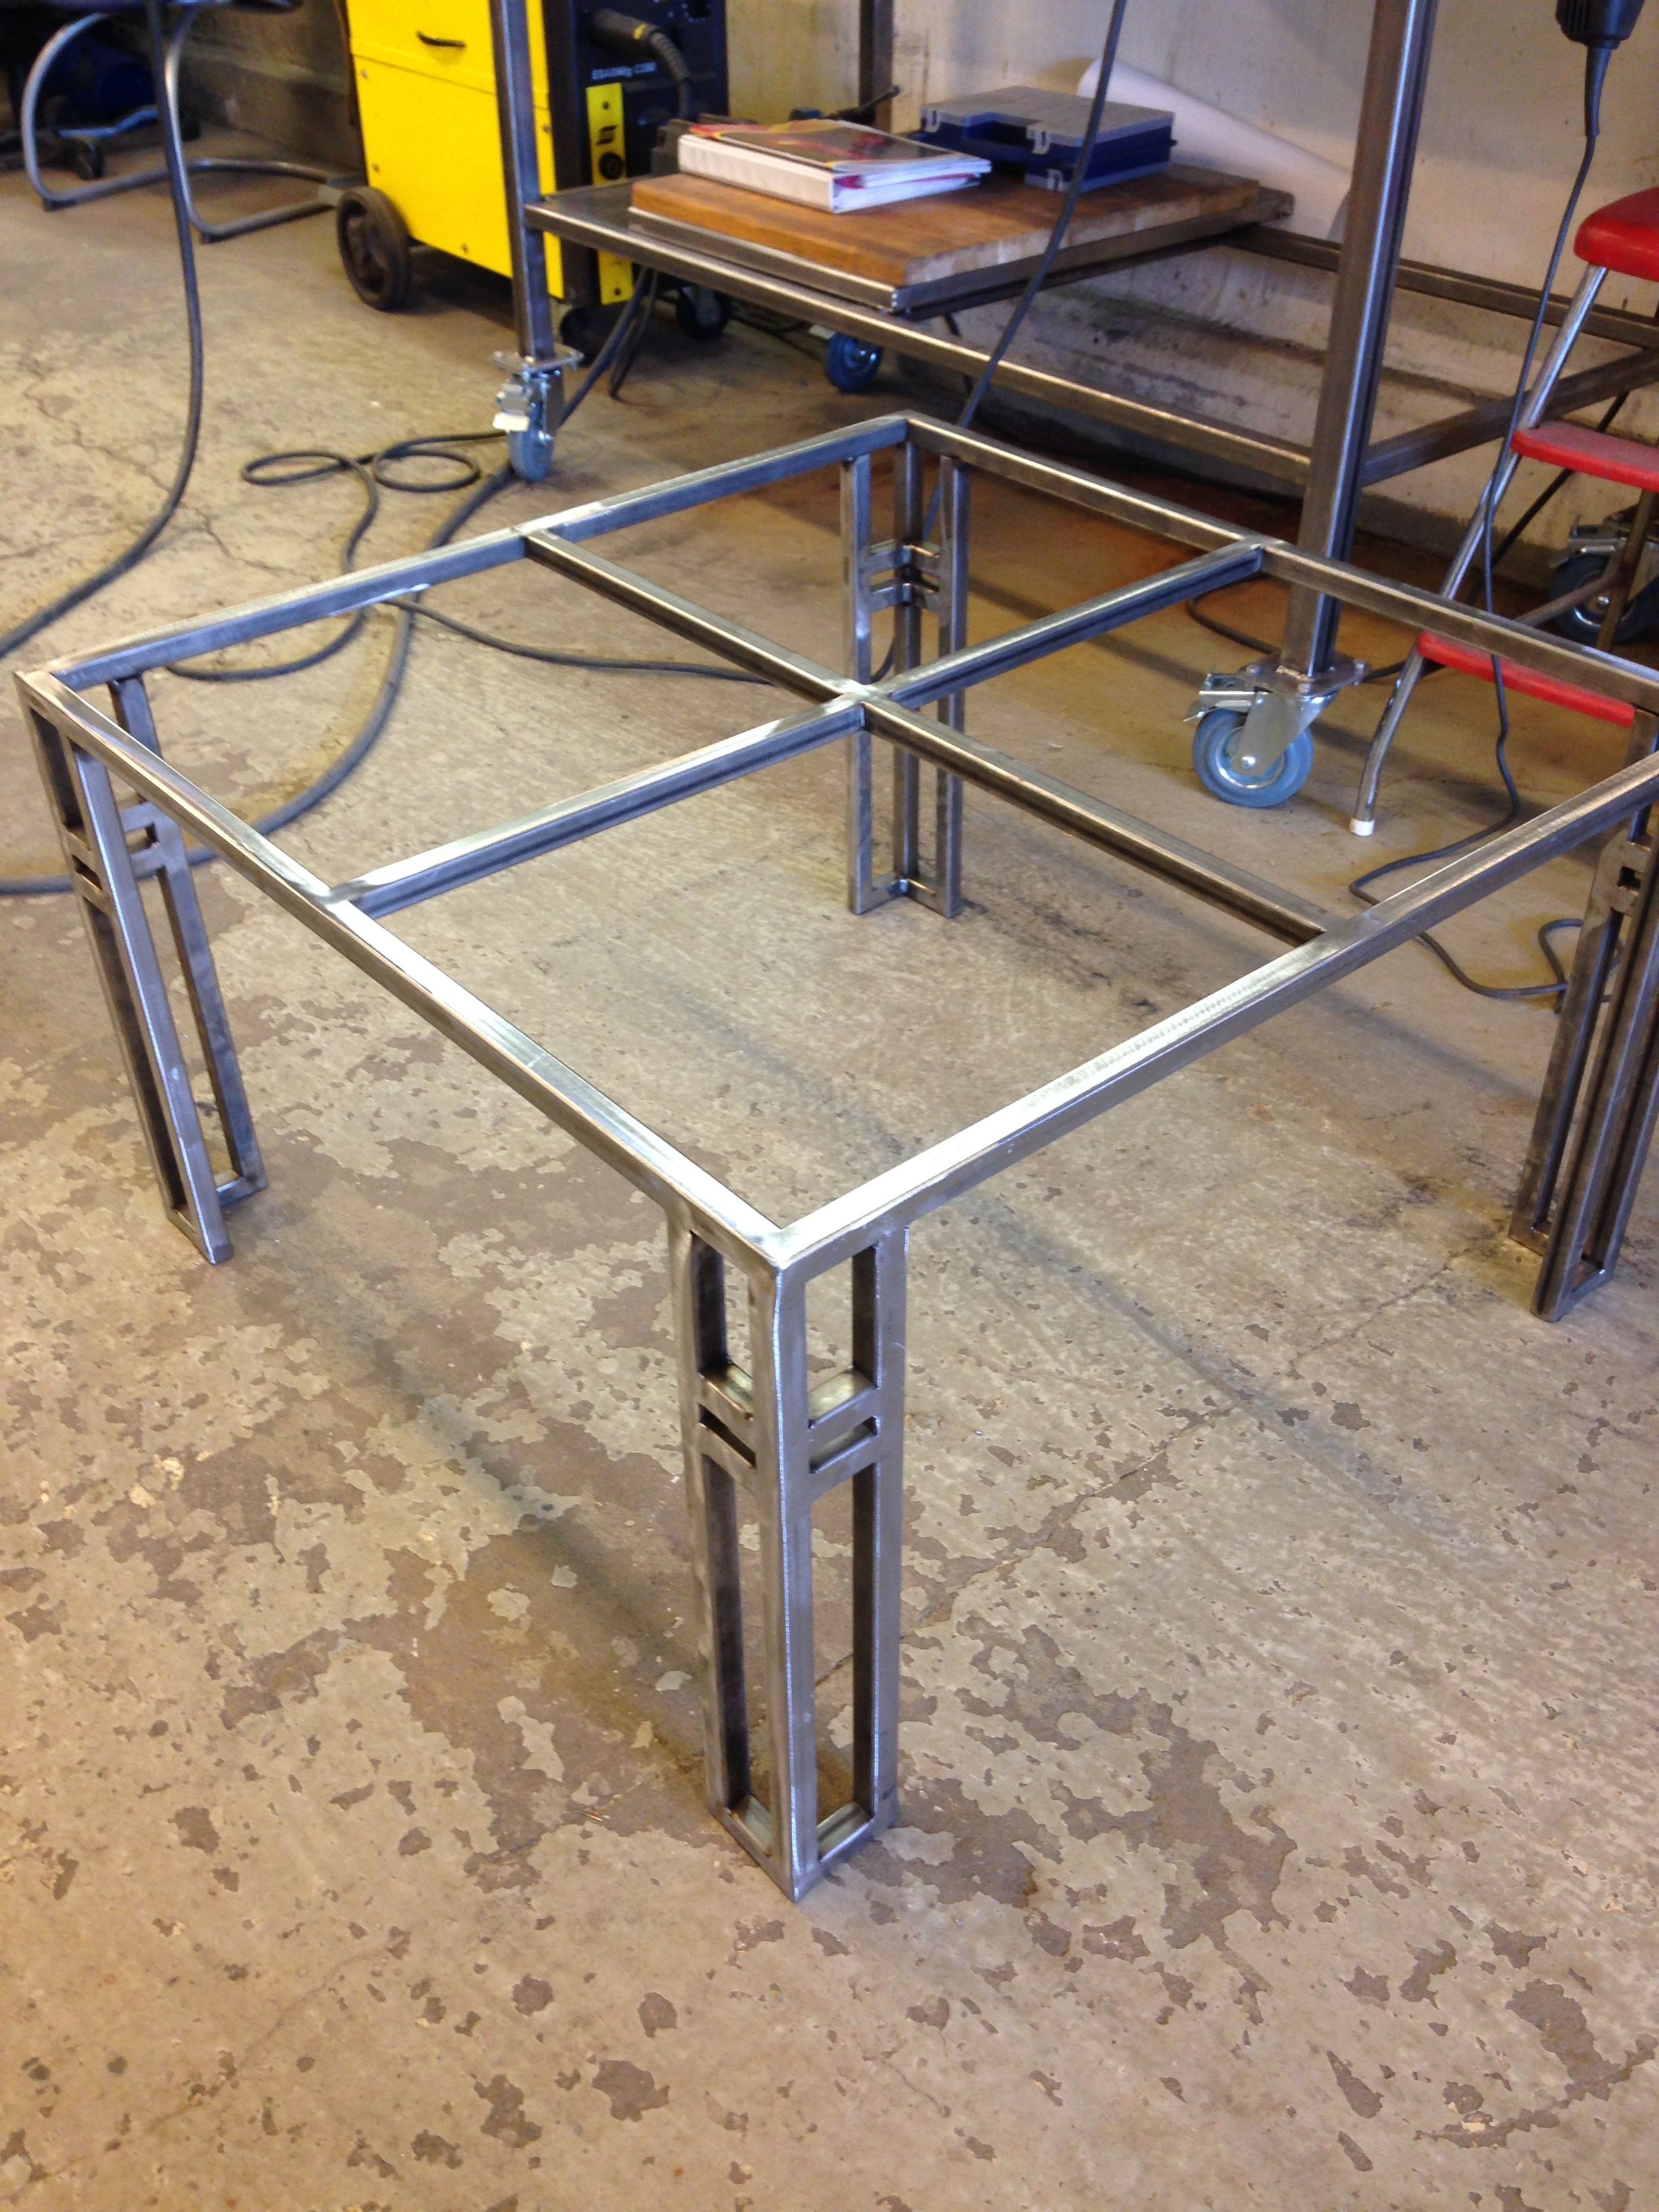 Muebles Hierro Y Madera Welding Table Welding Projects Muebles Mesa Muebles Hierro Y